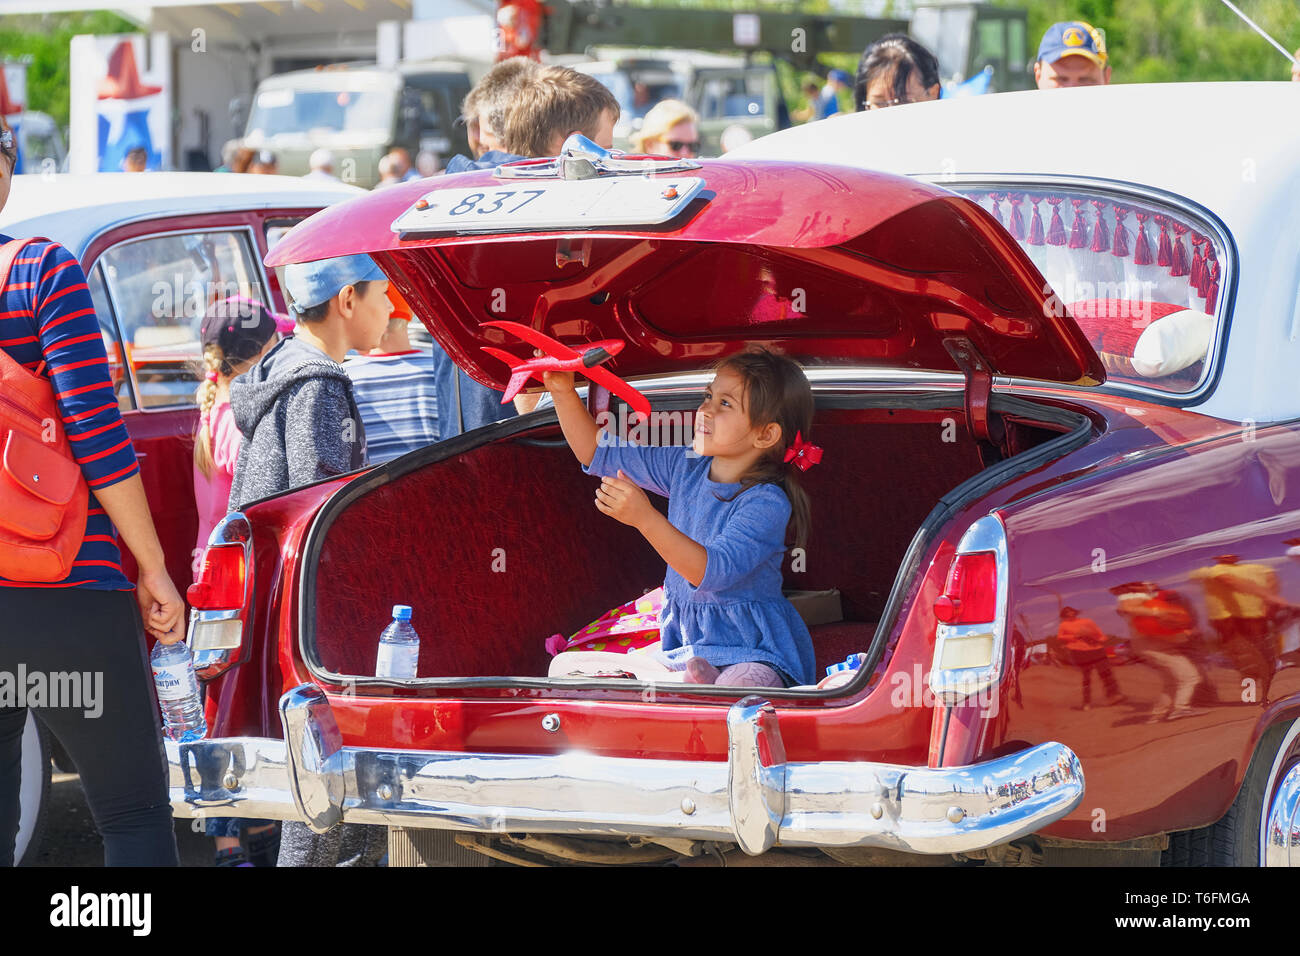 Girl plays sitting in the trunk of a car - Stock Image